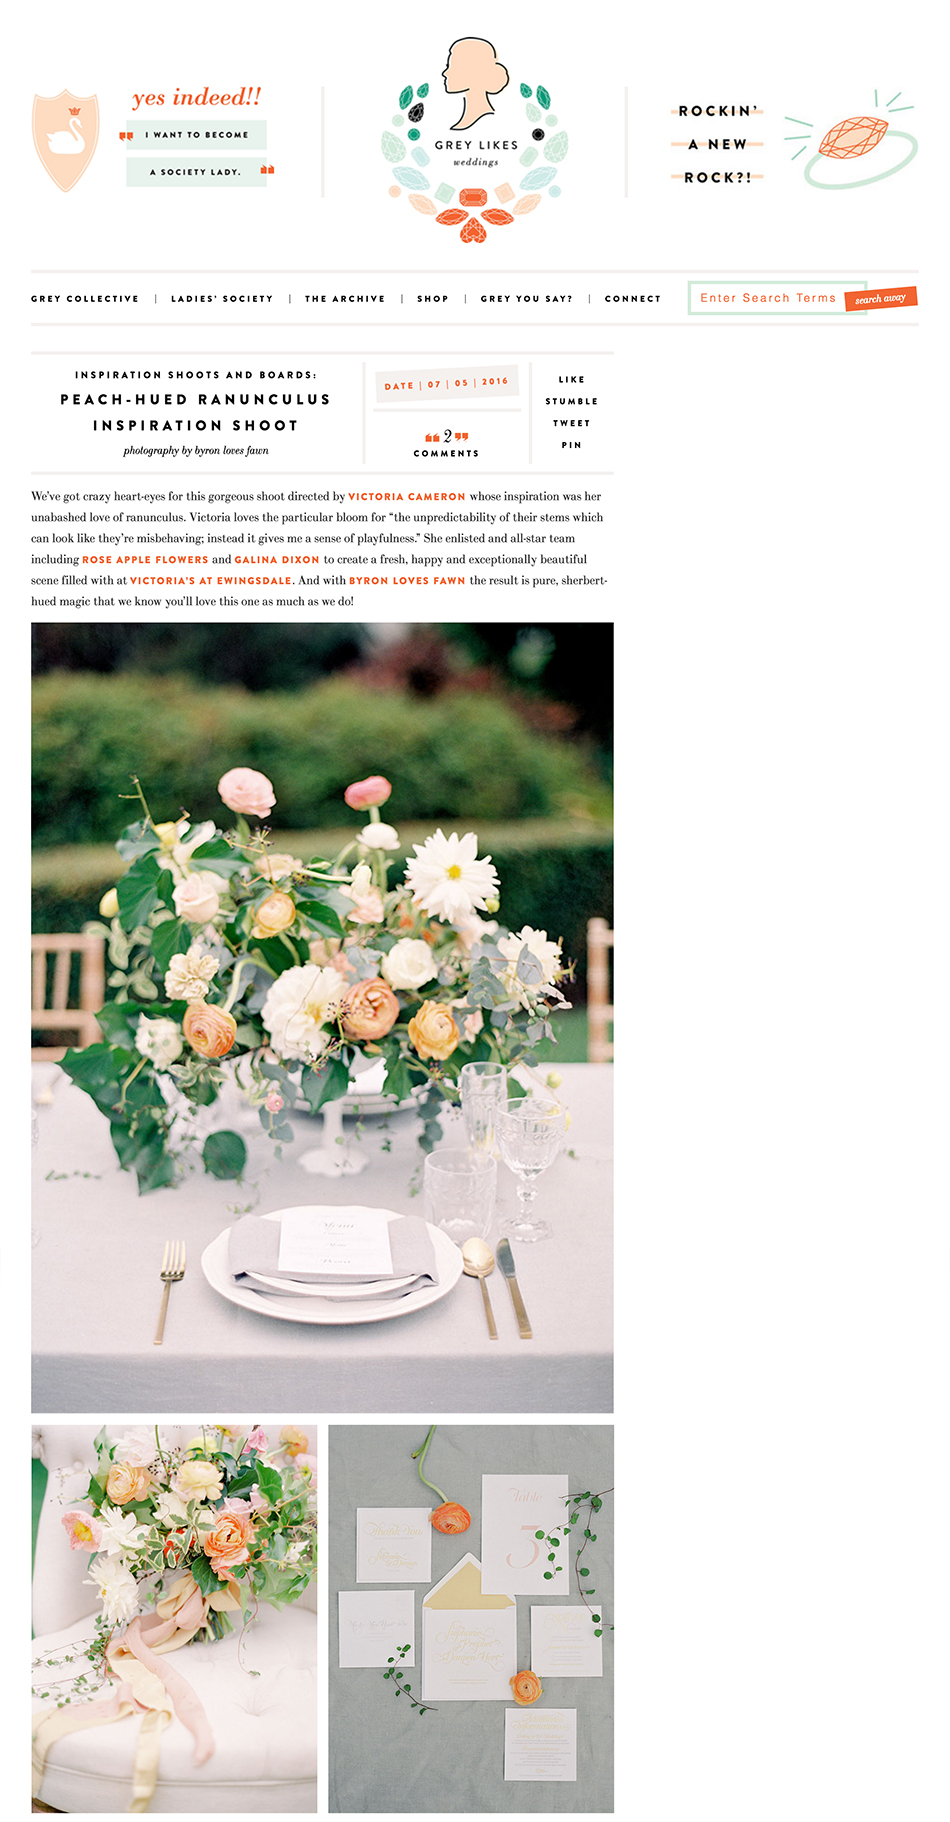 Galina Dixon on Grey Likes Weddings